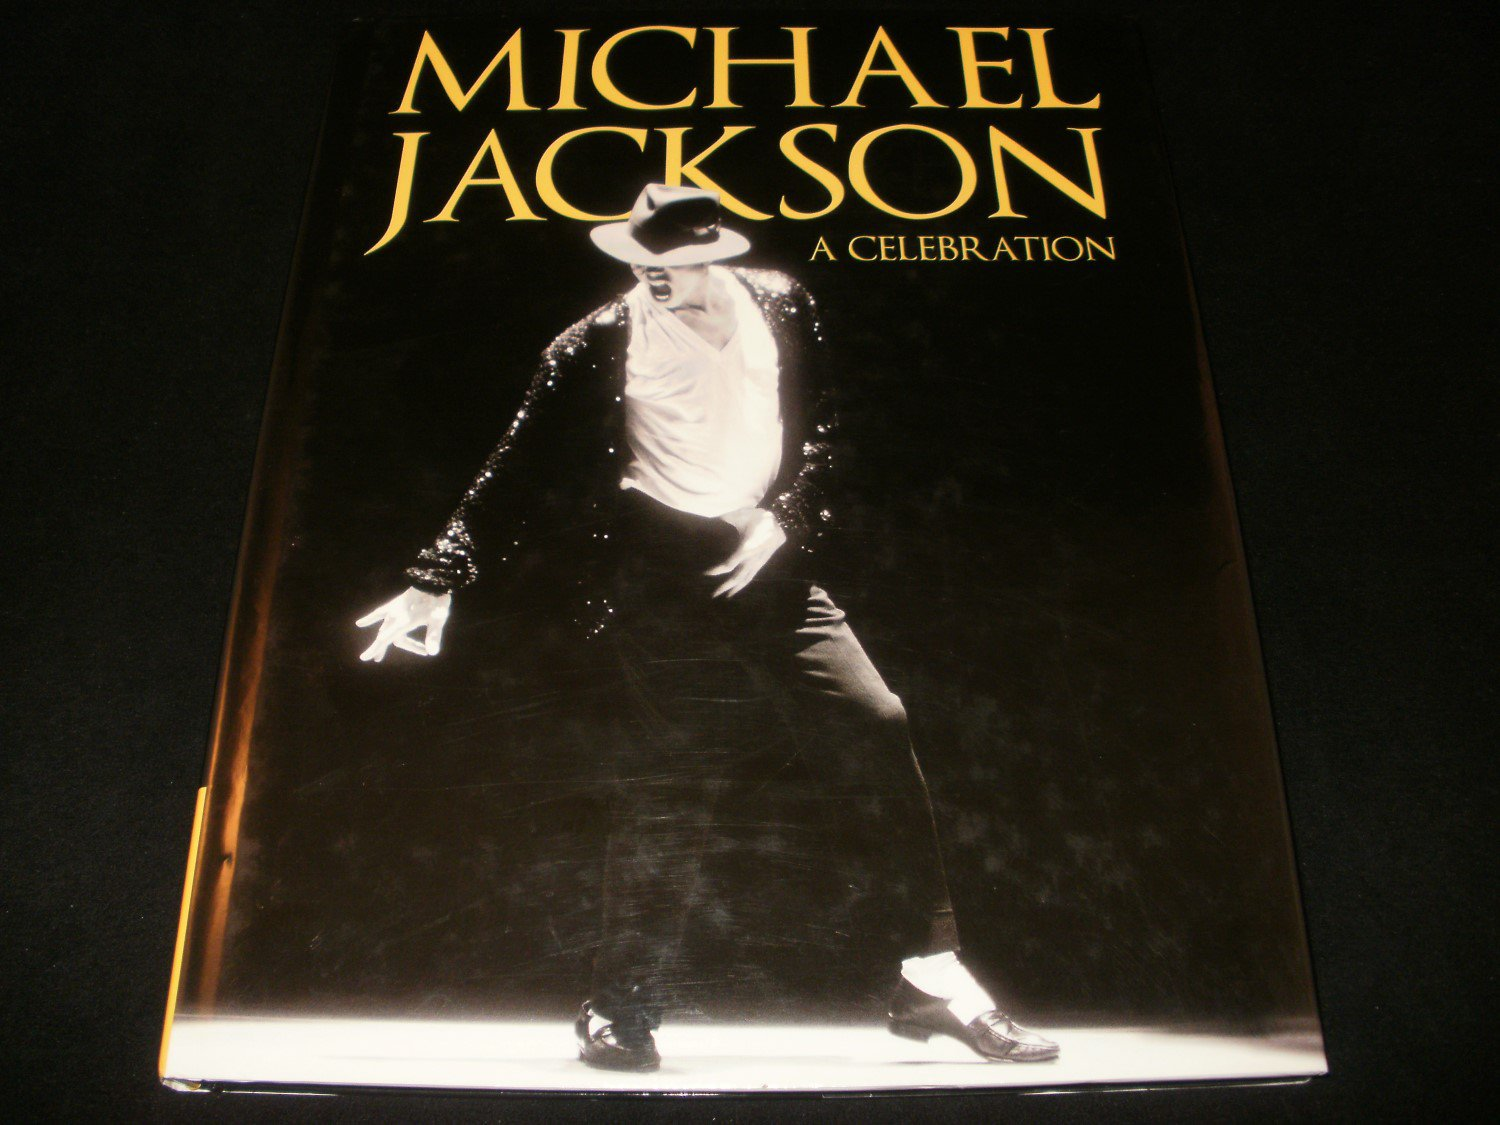 Michael Jackson A Celebration - Carlton Books (2009) - Chris Roberts - Hardcover